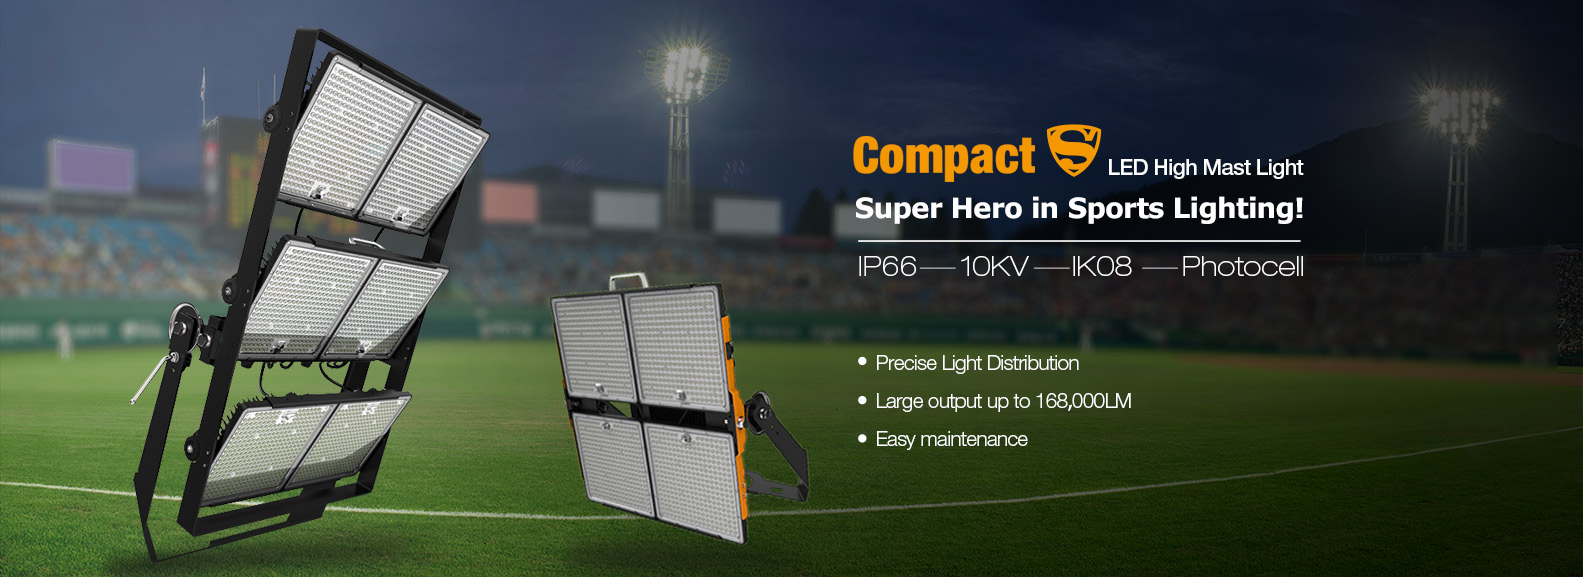 Compact S LED high mast light